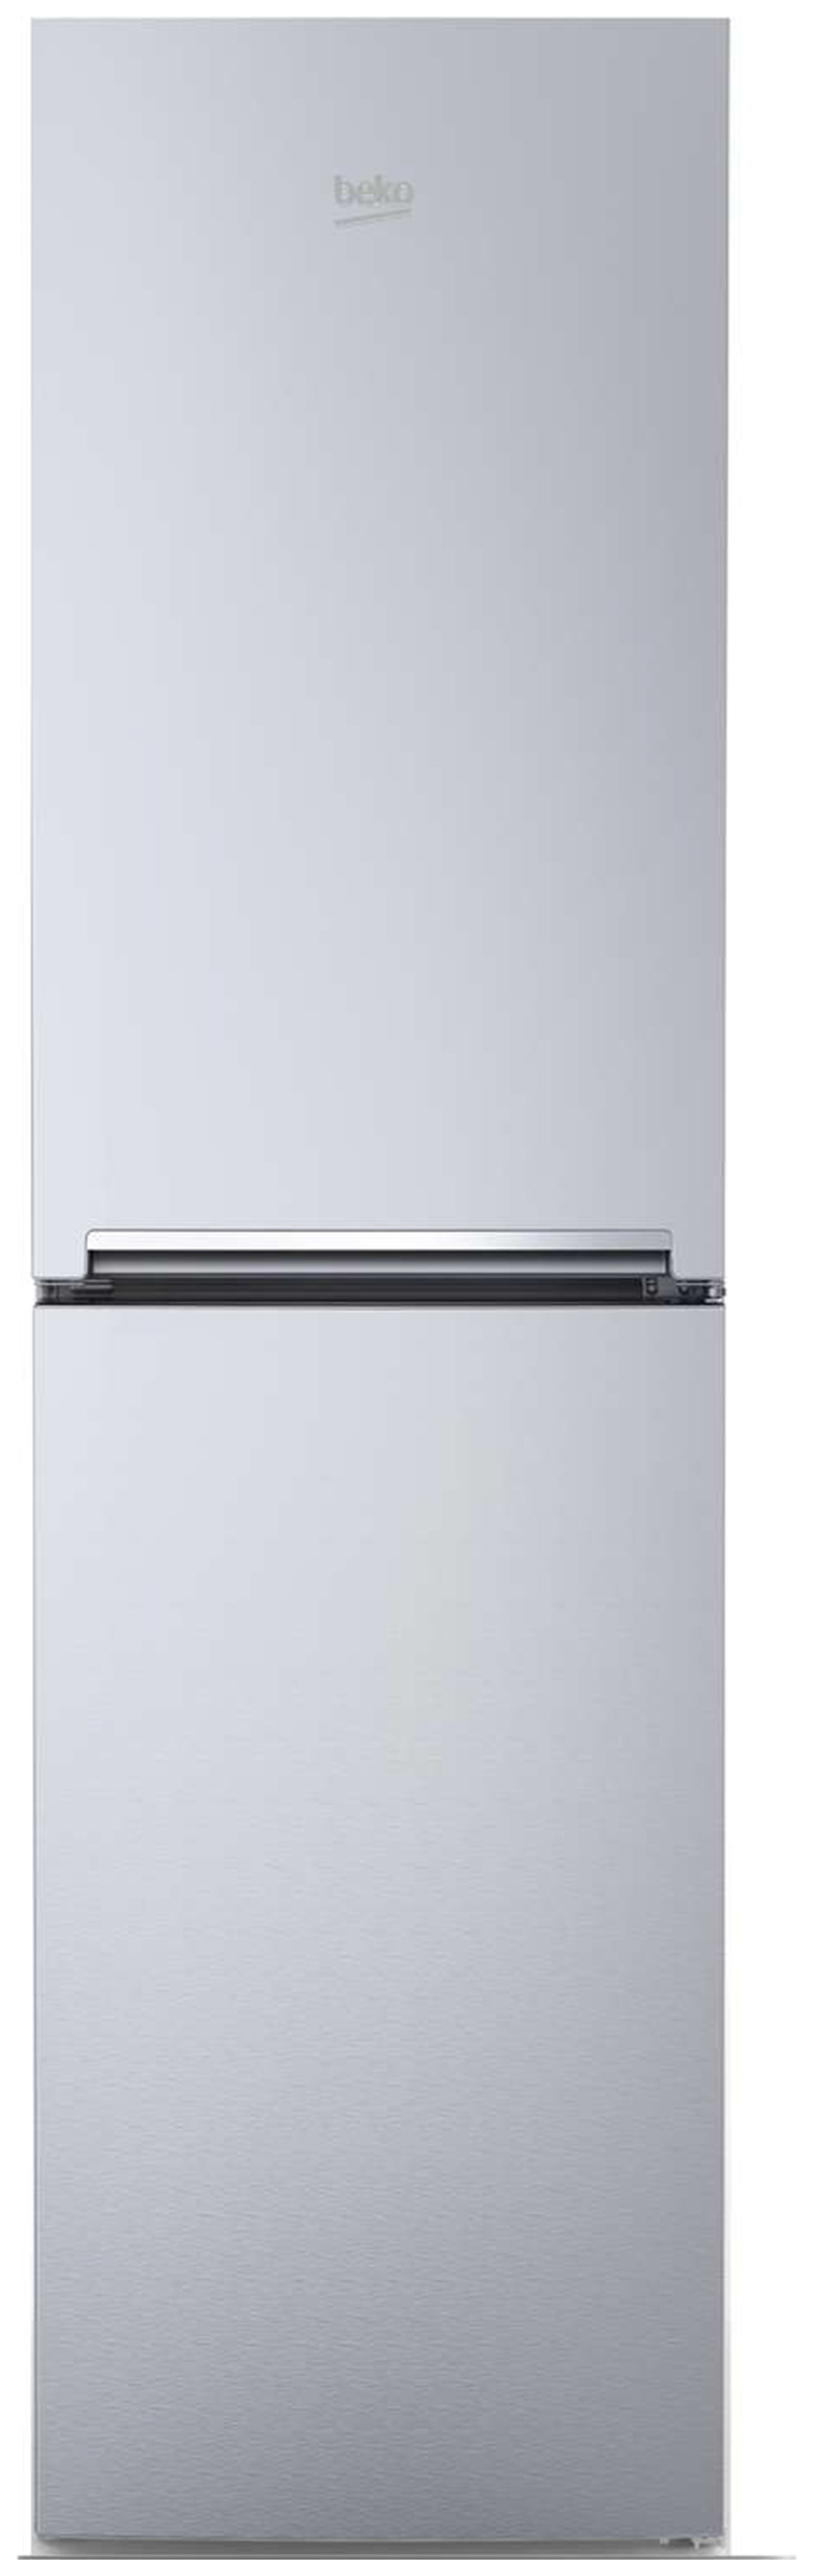 Beko CFG1582S Fridge Freezer - Silver